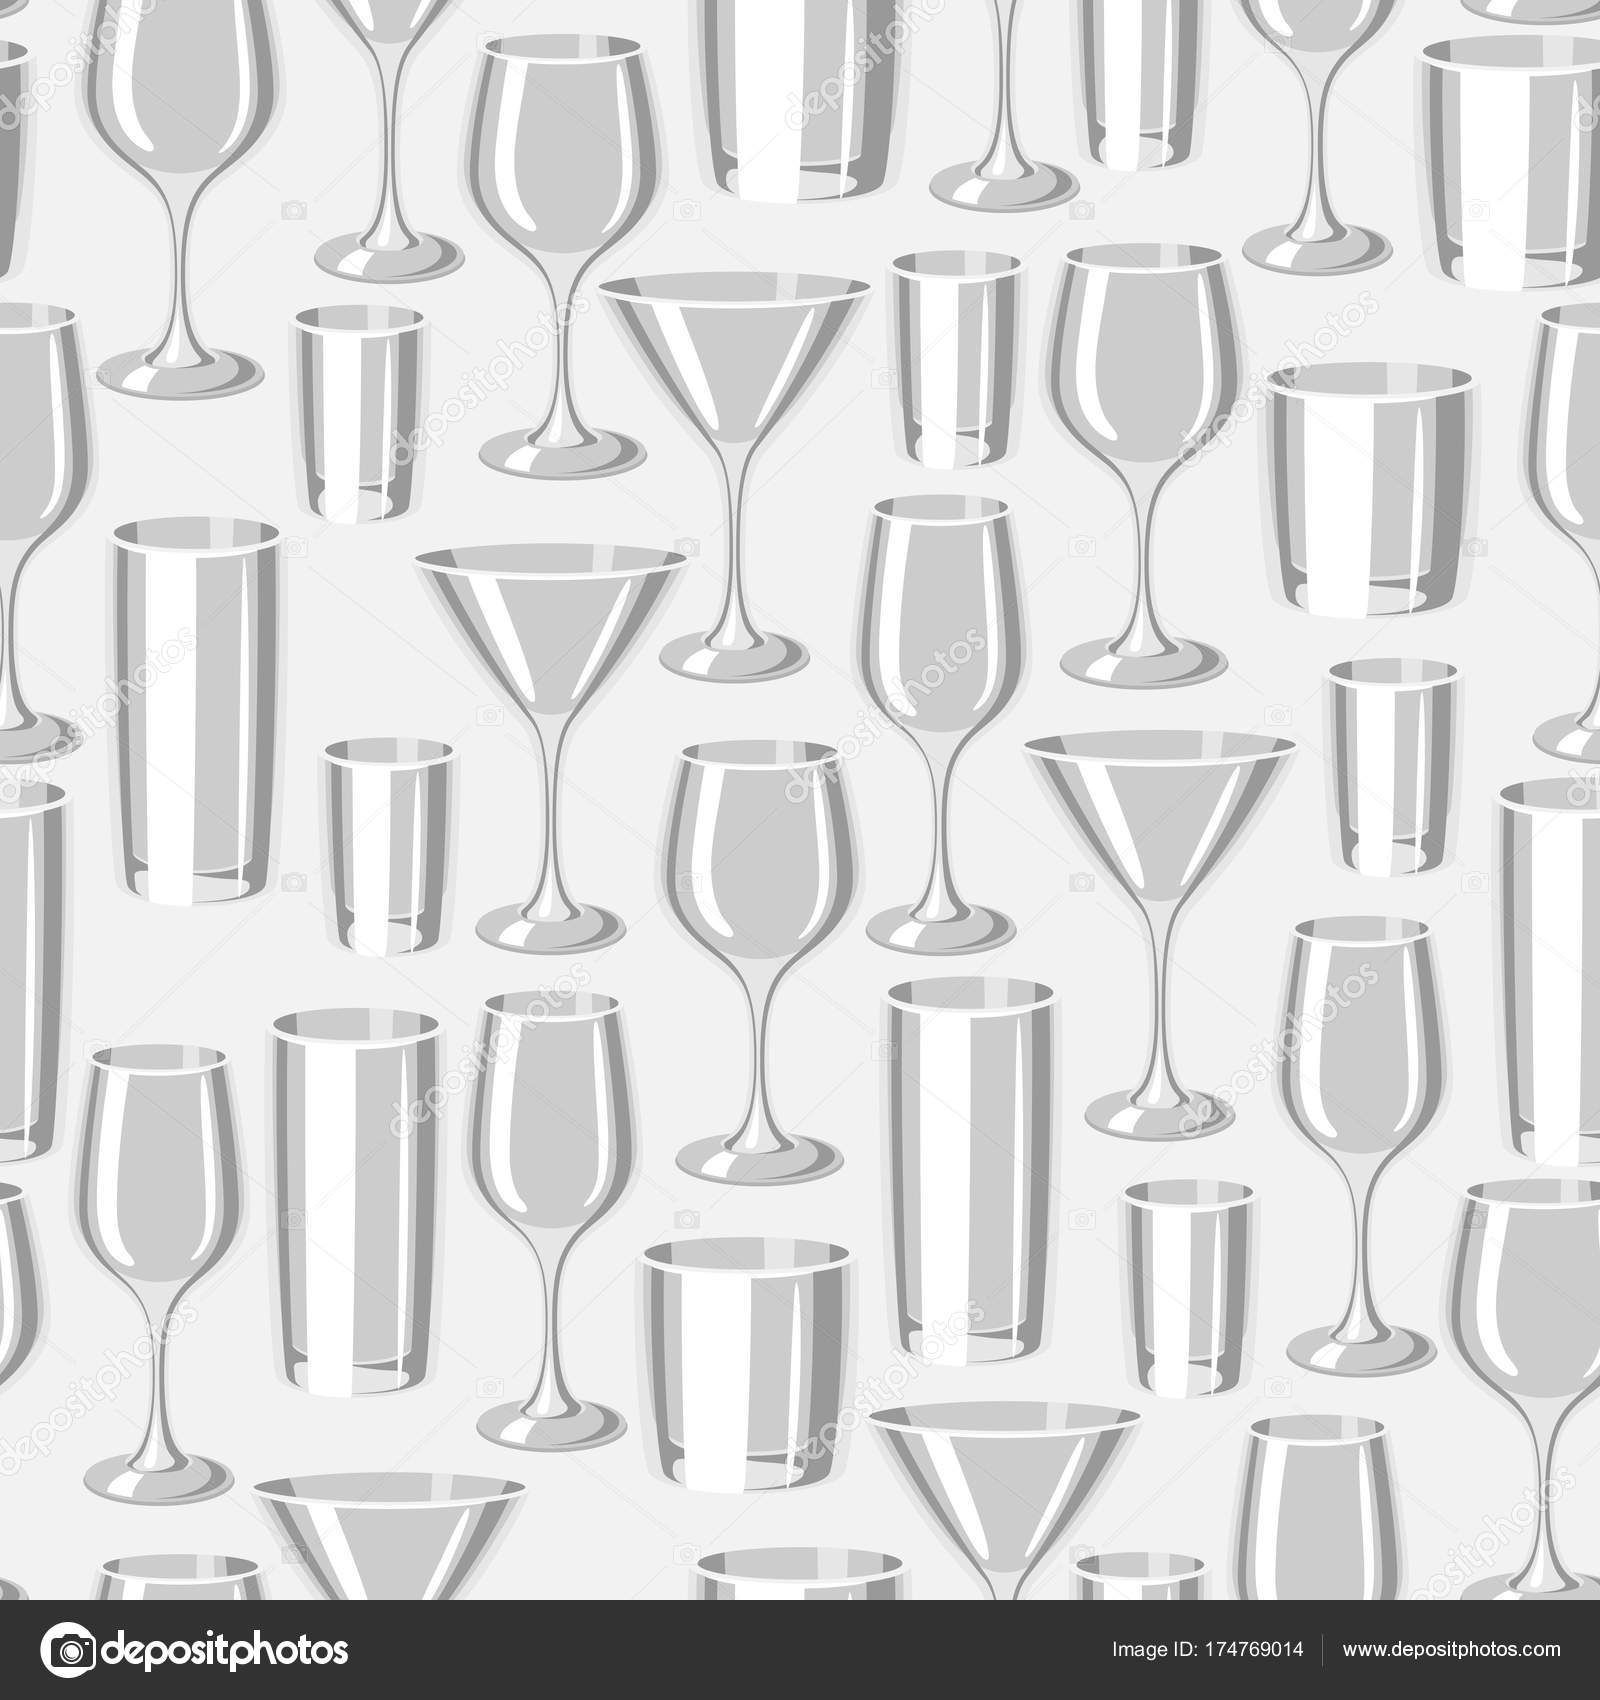 Types Of Bar Gles Seamless Pattern With Alcohol Glware